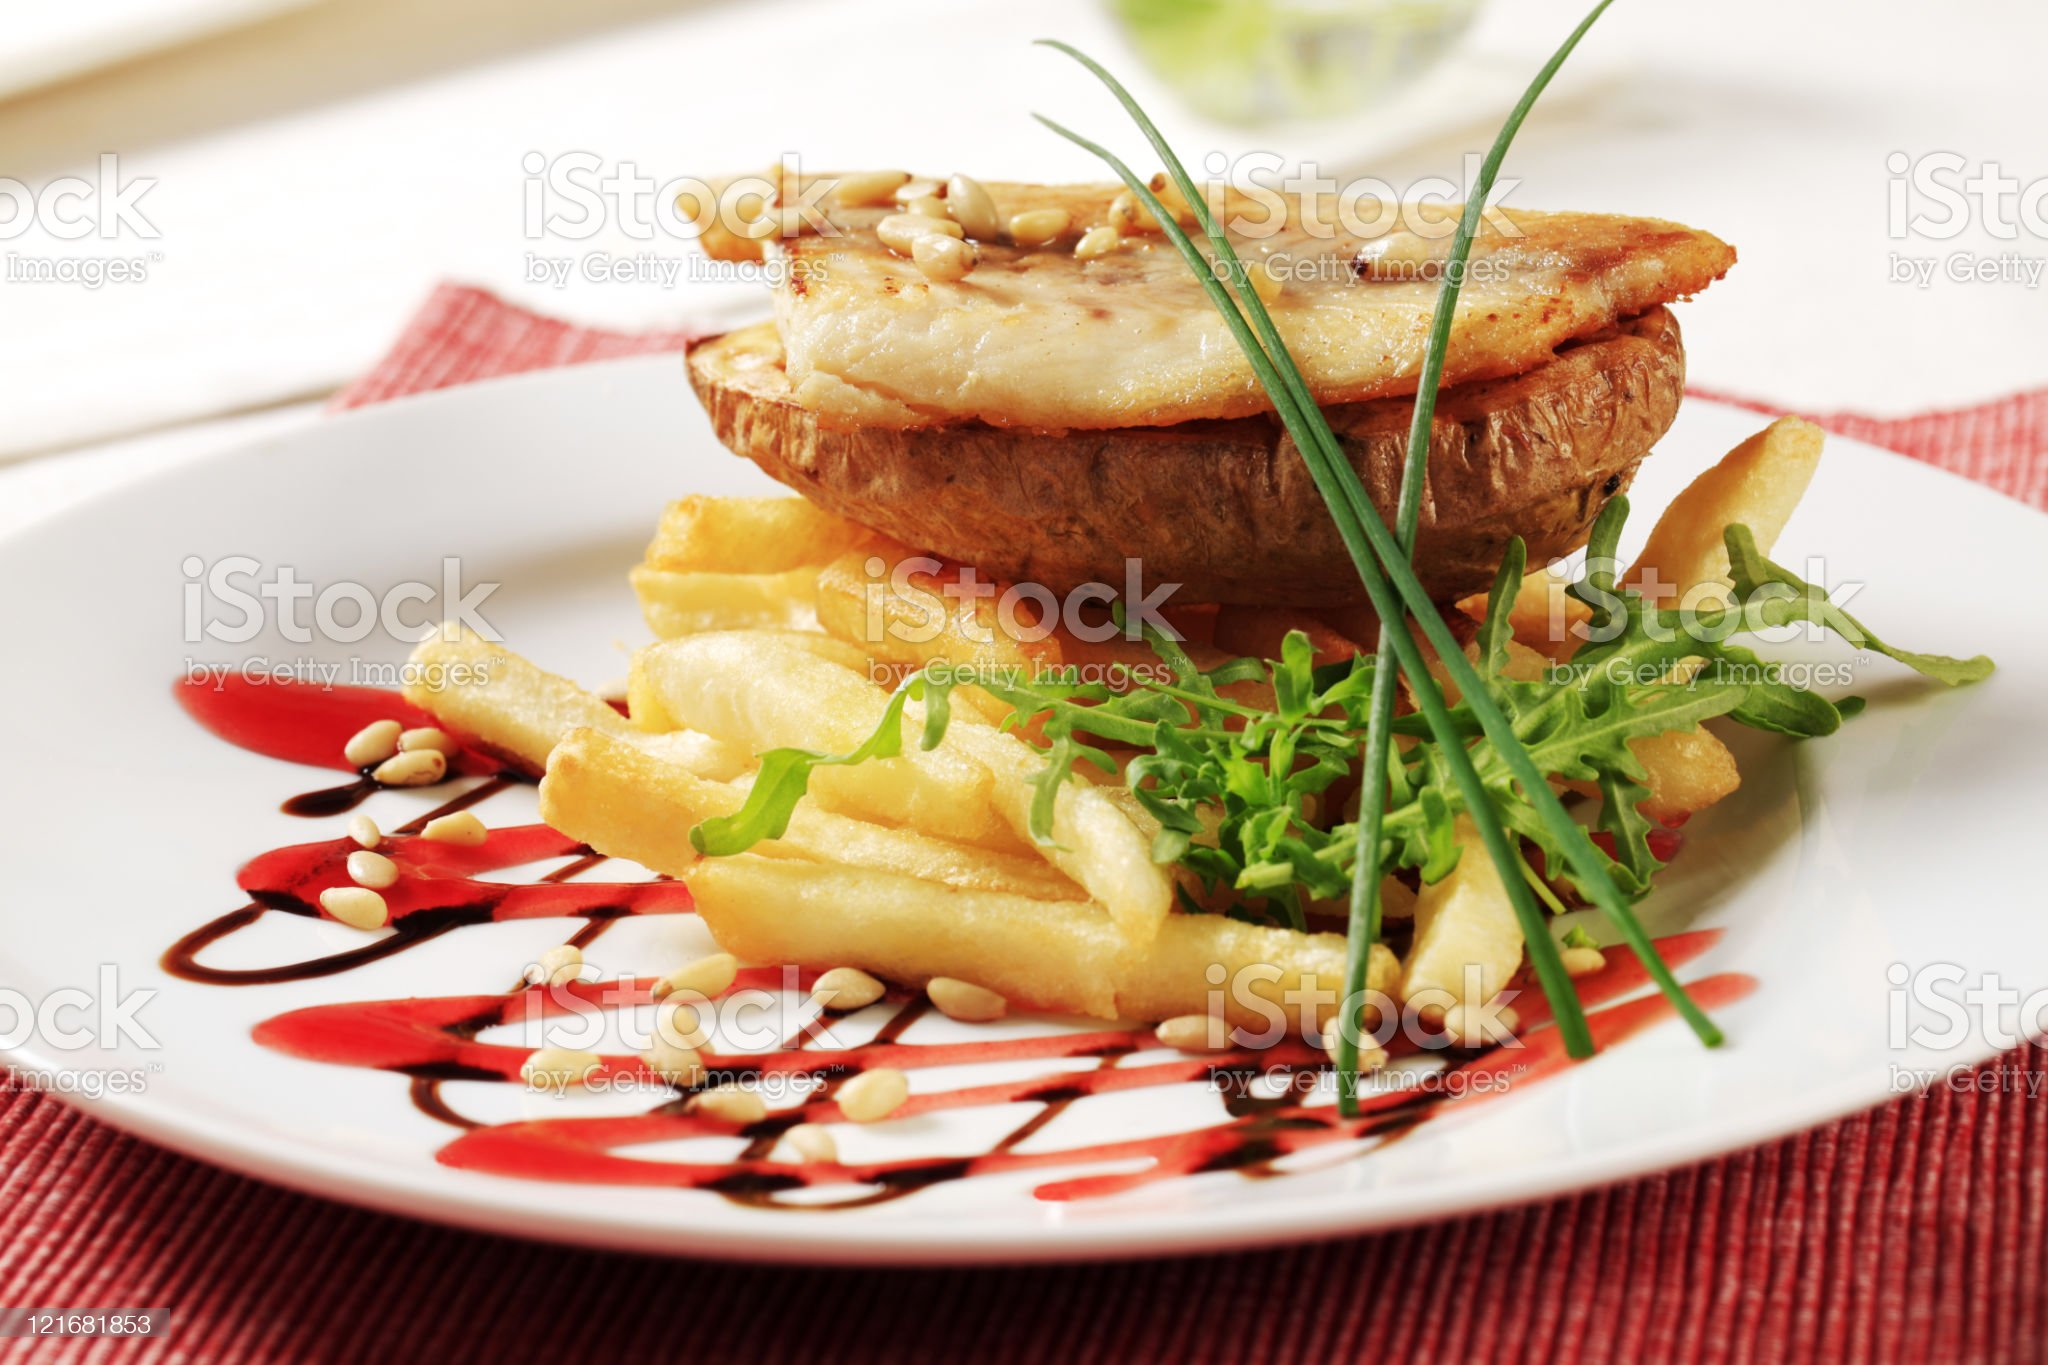 Pan fried fish fillet and fries royalty-free stock photo